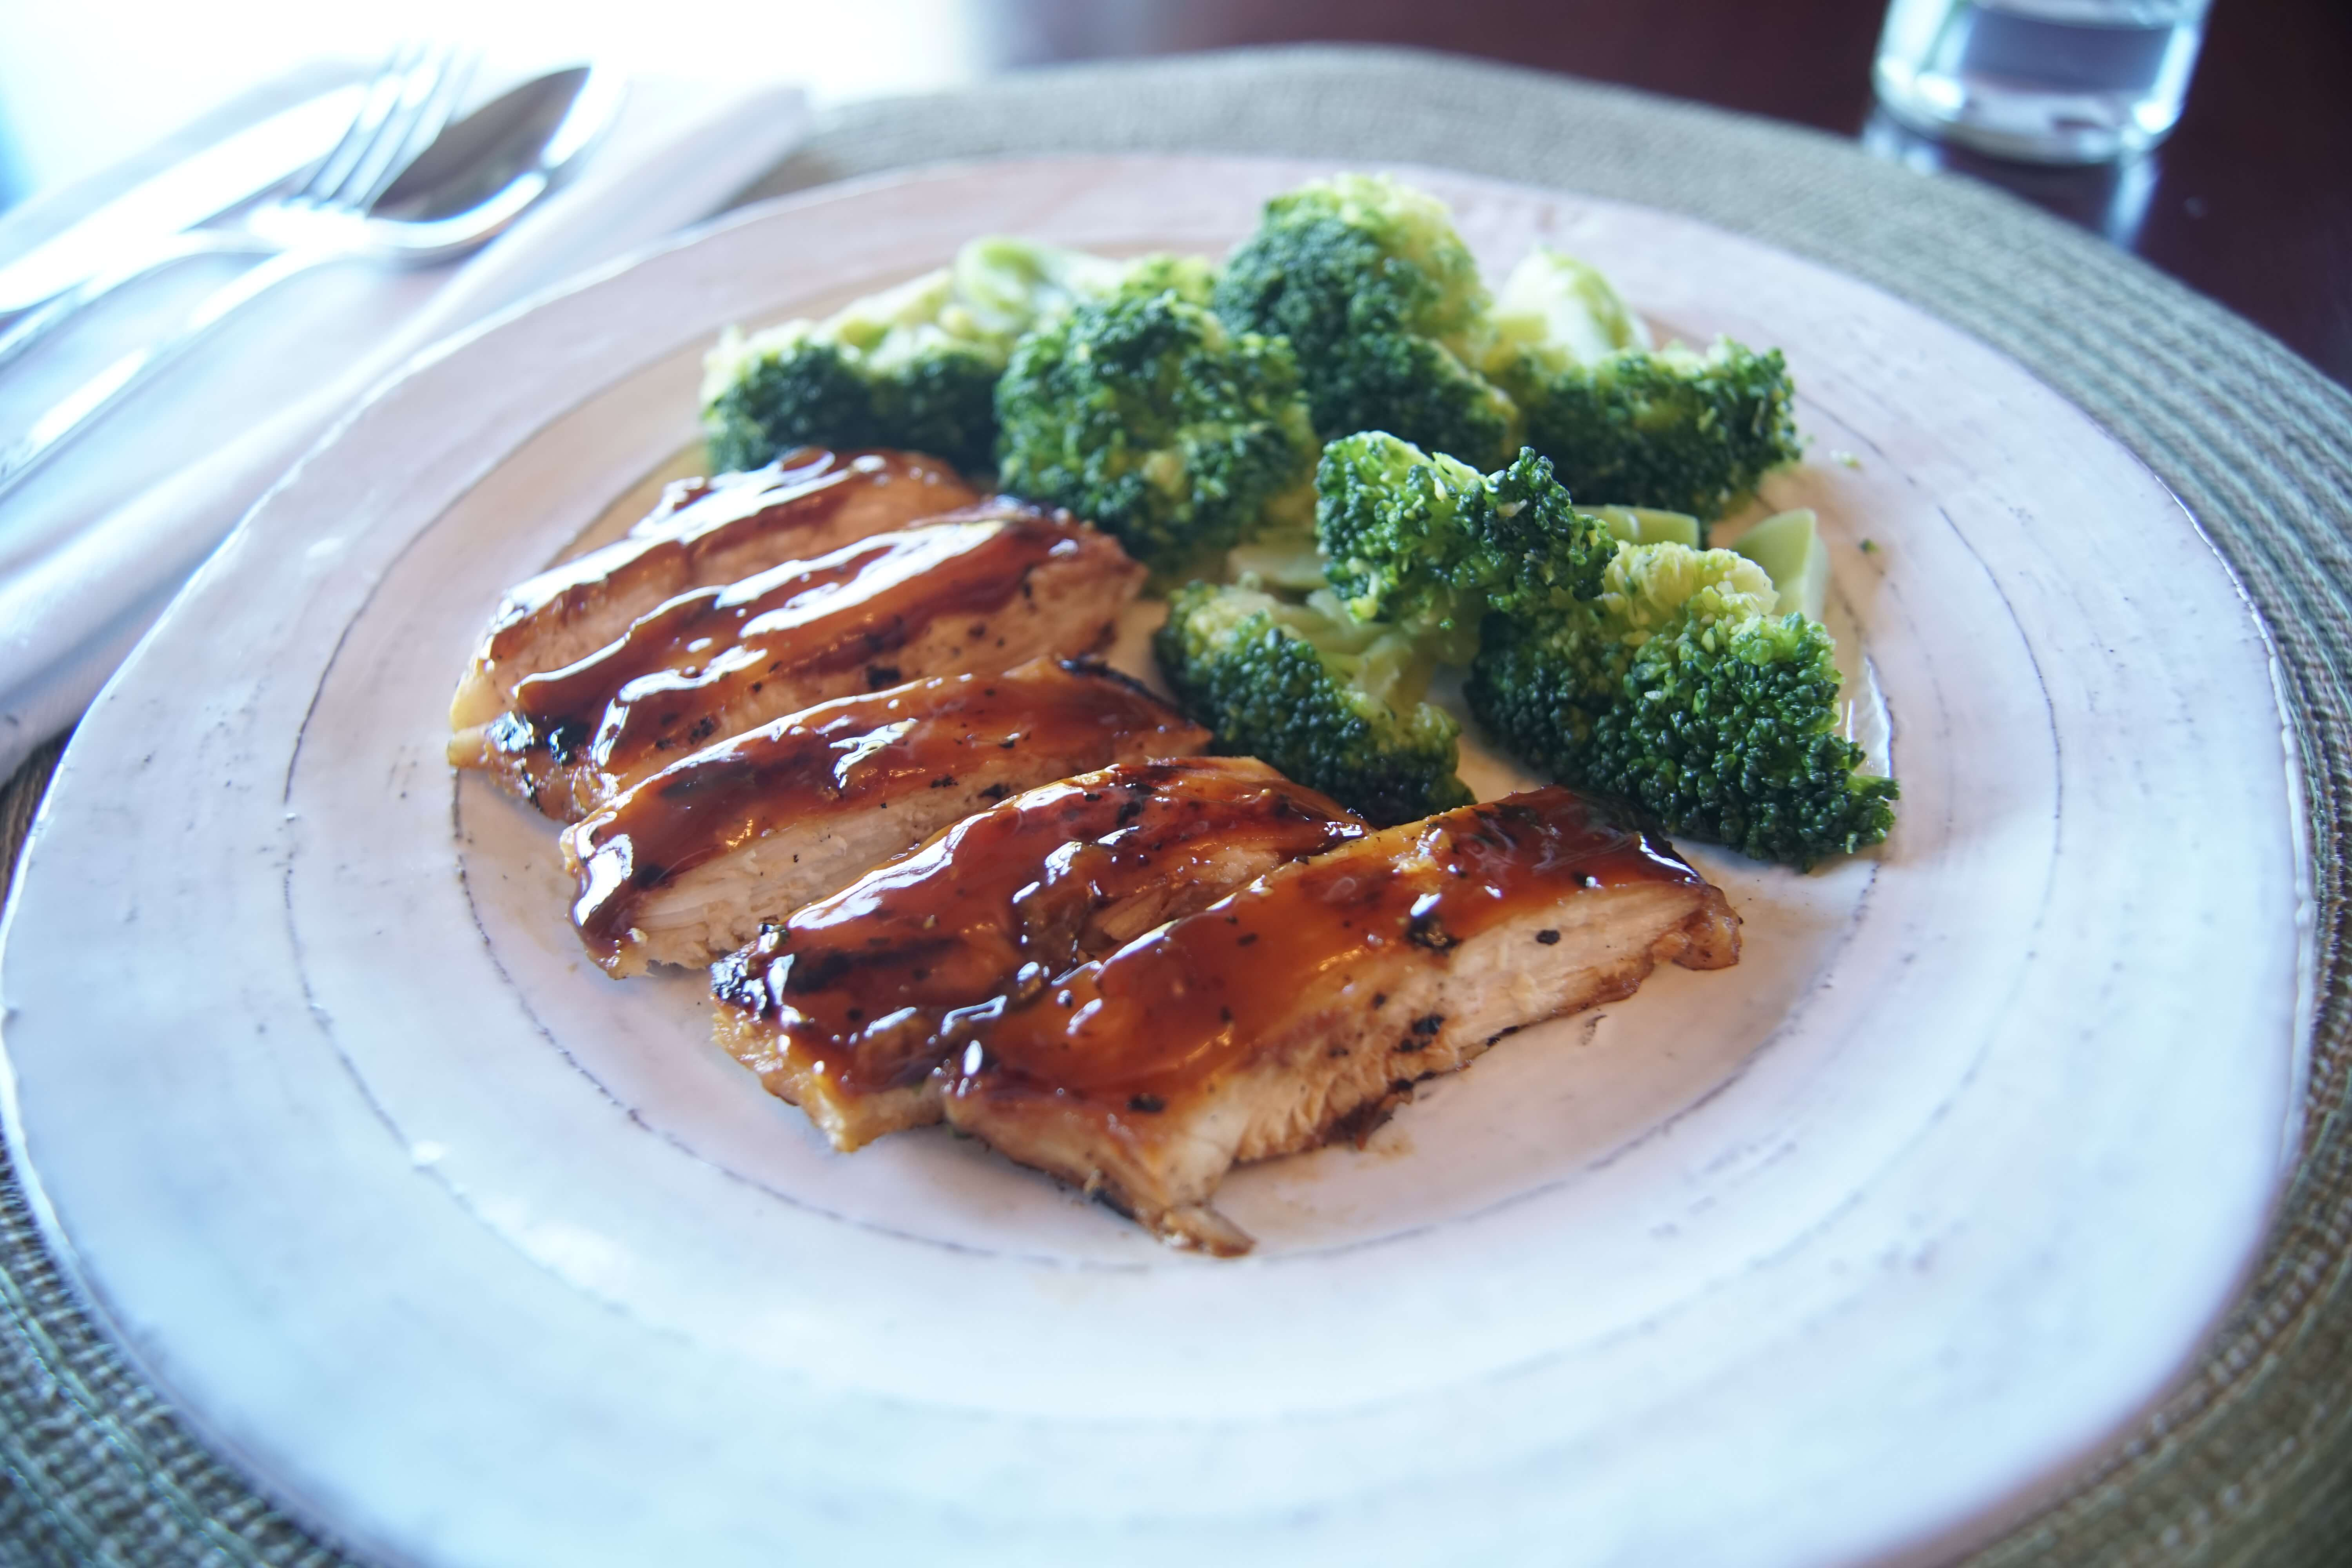 Apple pie moonshine chicken jeptha creed a sweet moonshine glaze on top of chicken breast perfect for a dinner with friends forumfinder Choice Image